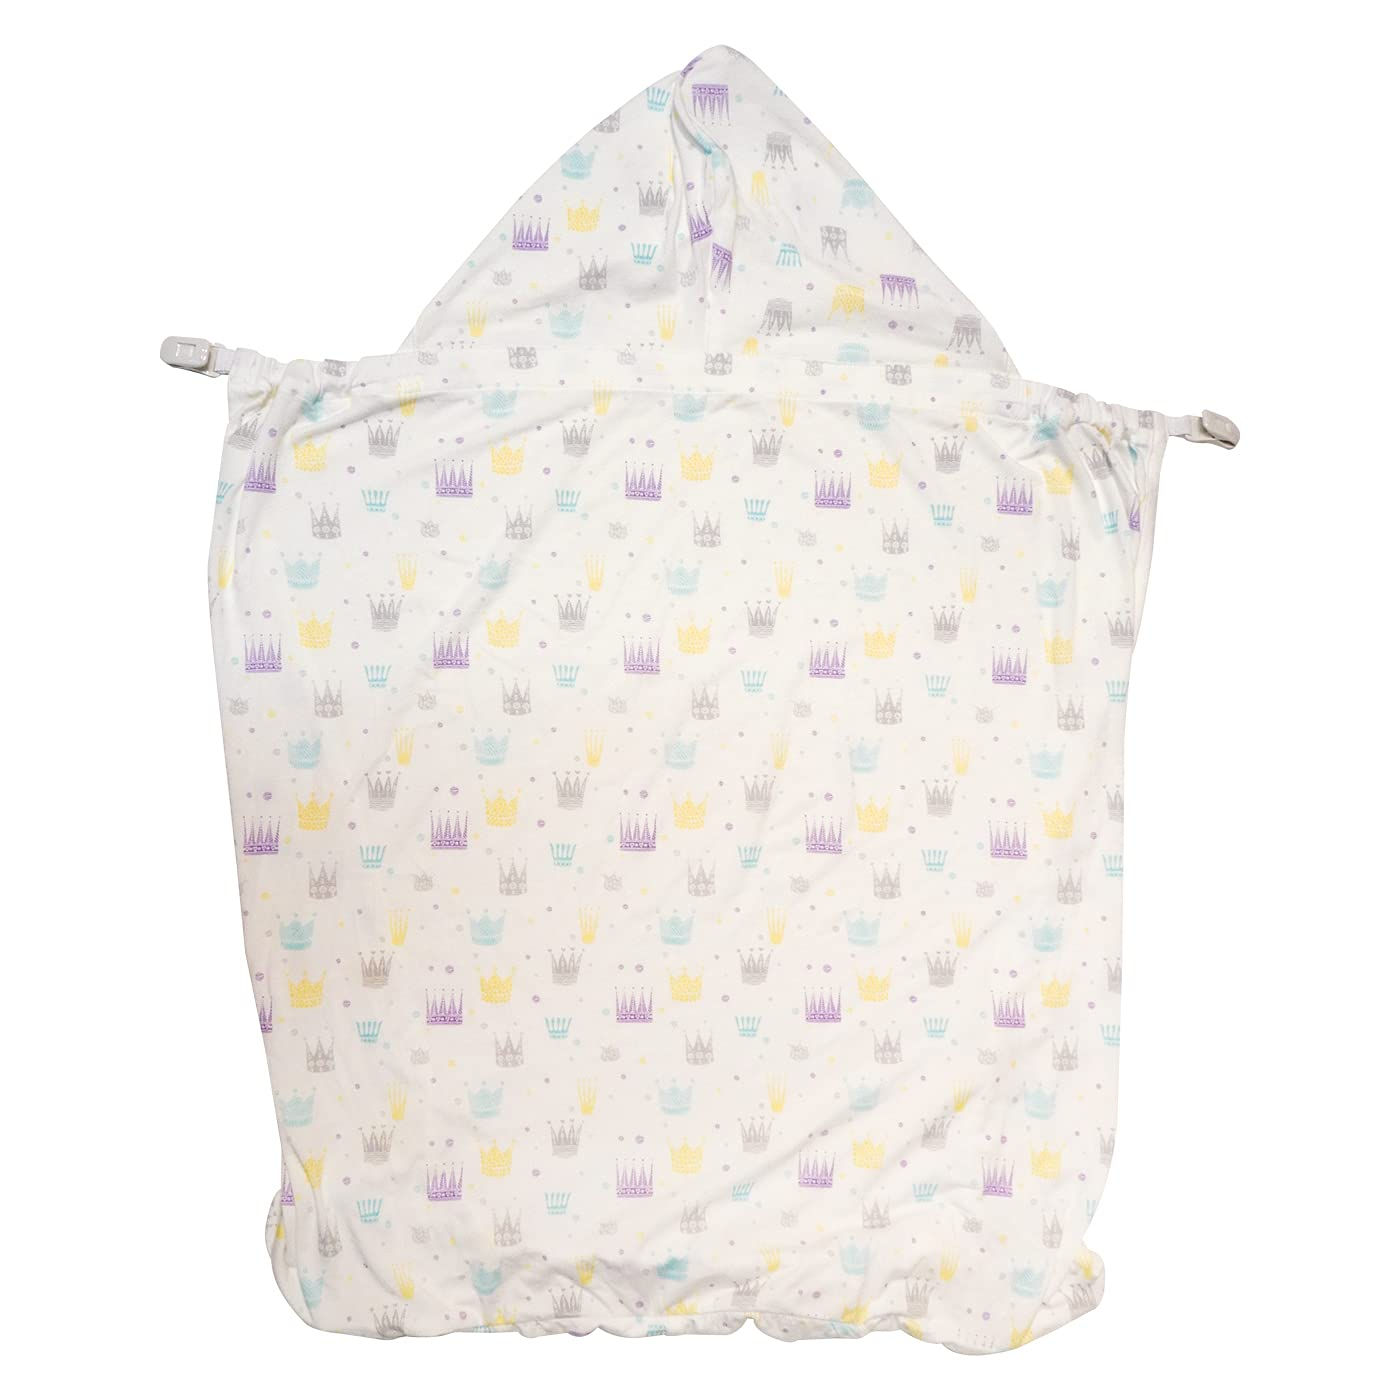 【angelette】2-Way Cool Touch Cover/Sun Shade for Strollers/Baby Carrier,Car Seat and Stroller/Blocks 90% of UV / Bamboo_Fiber (Crown)